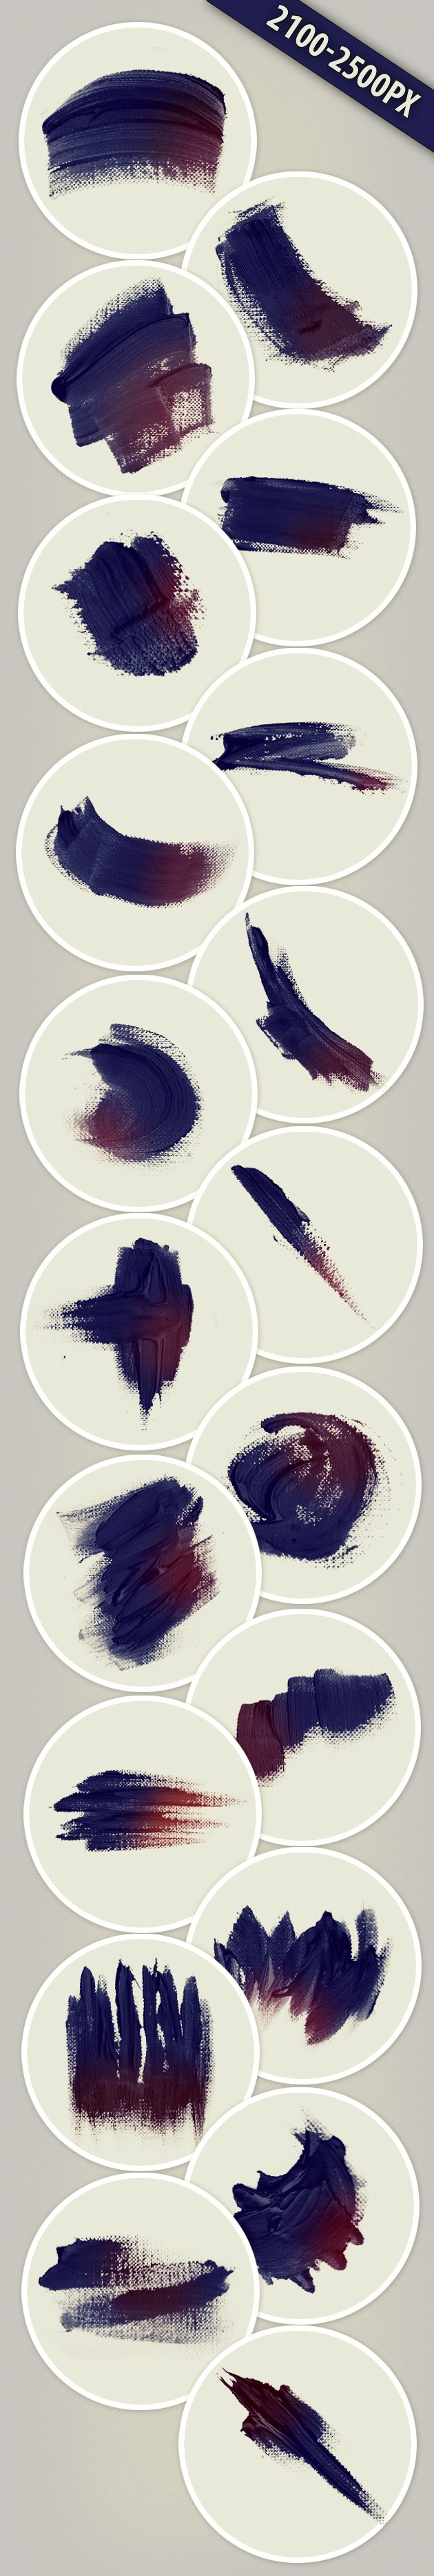 Paint-Strokes-PS-Brushes 2